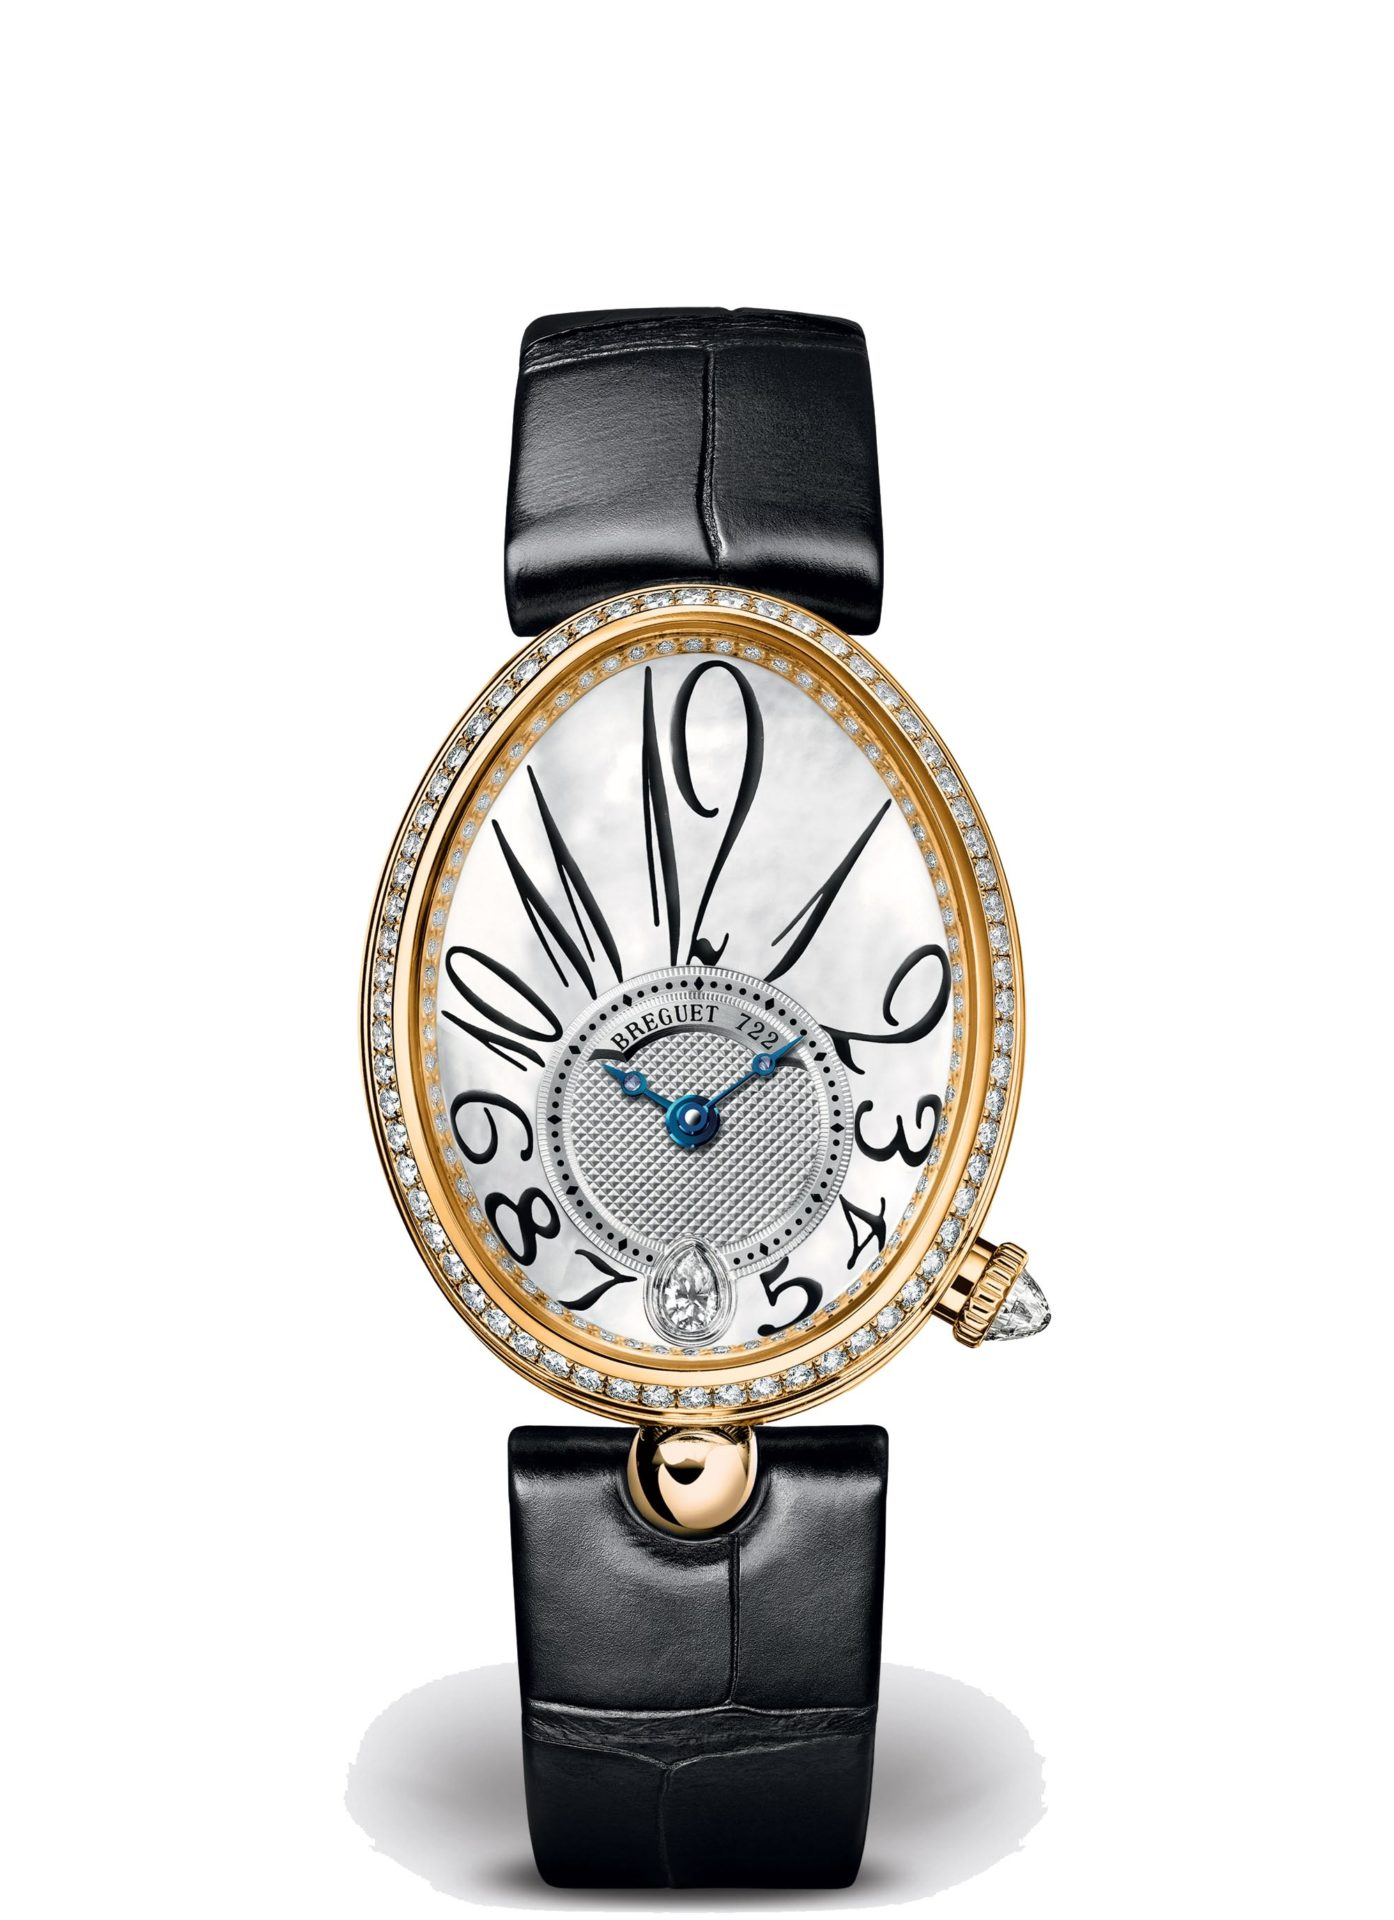 Breguet-Reine-de-Naples-8918-Hall-of-Time-8918BA-58-964D00D